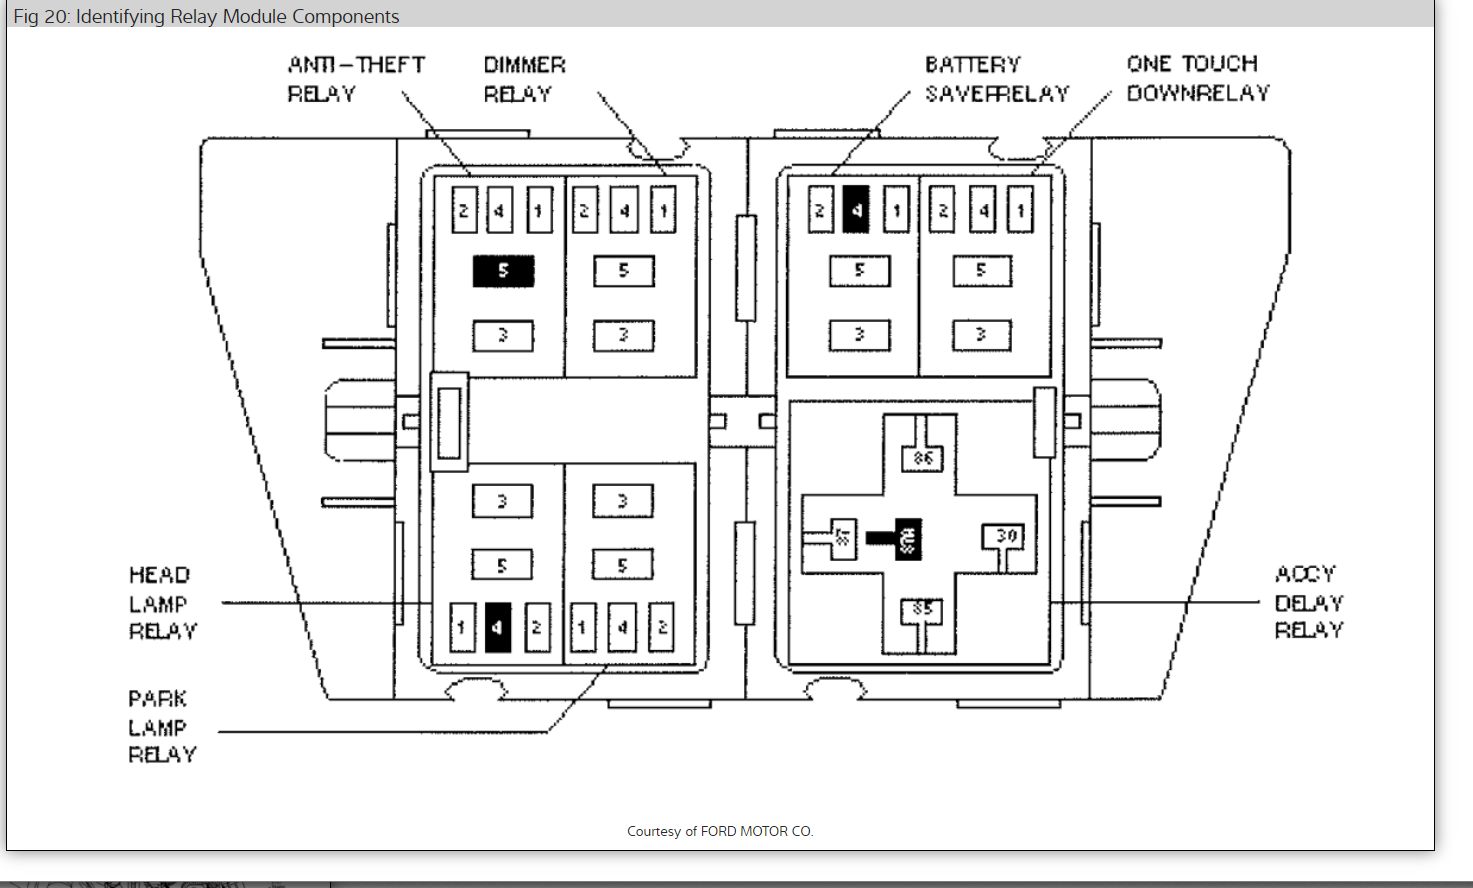 Fuse Box Diagram: I Have Lost the Manual and Need the